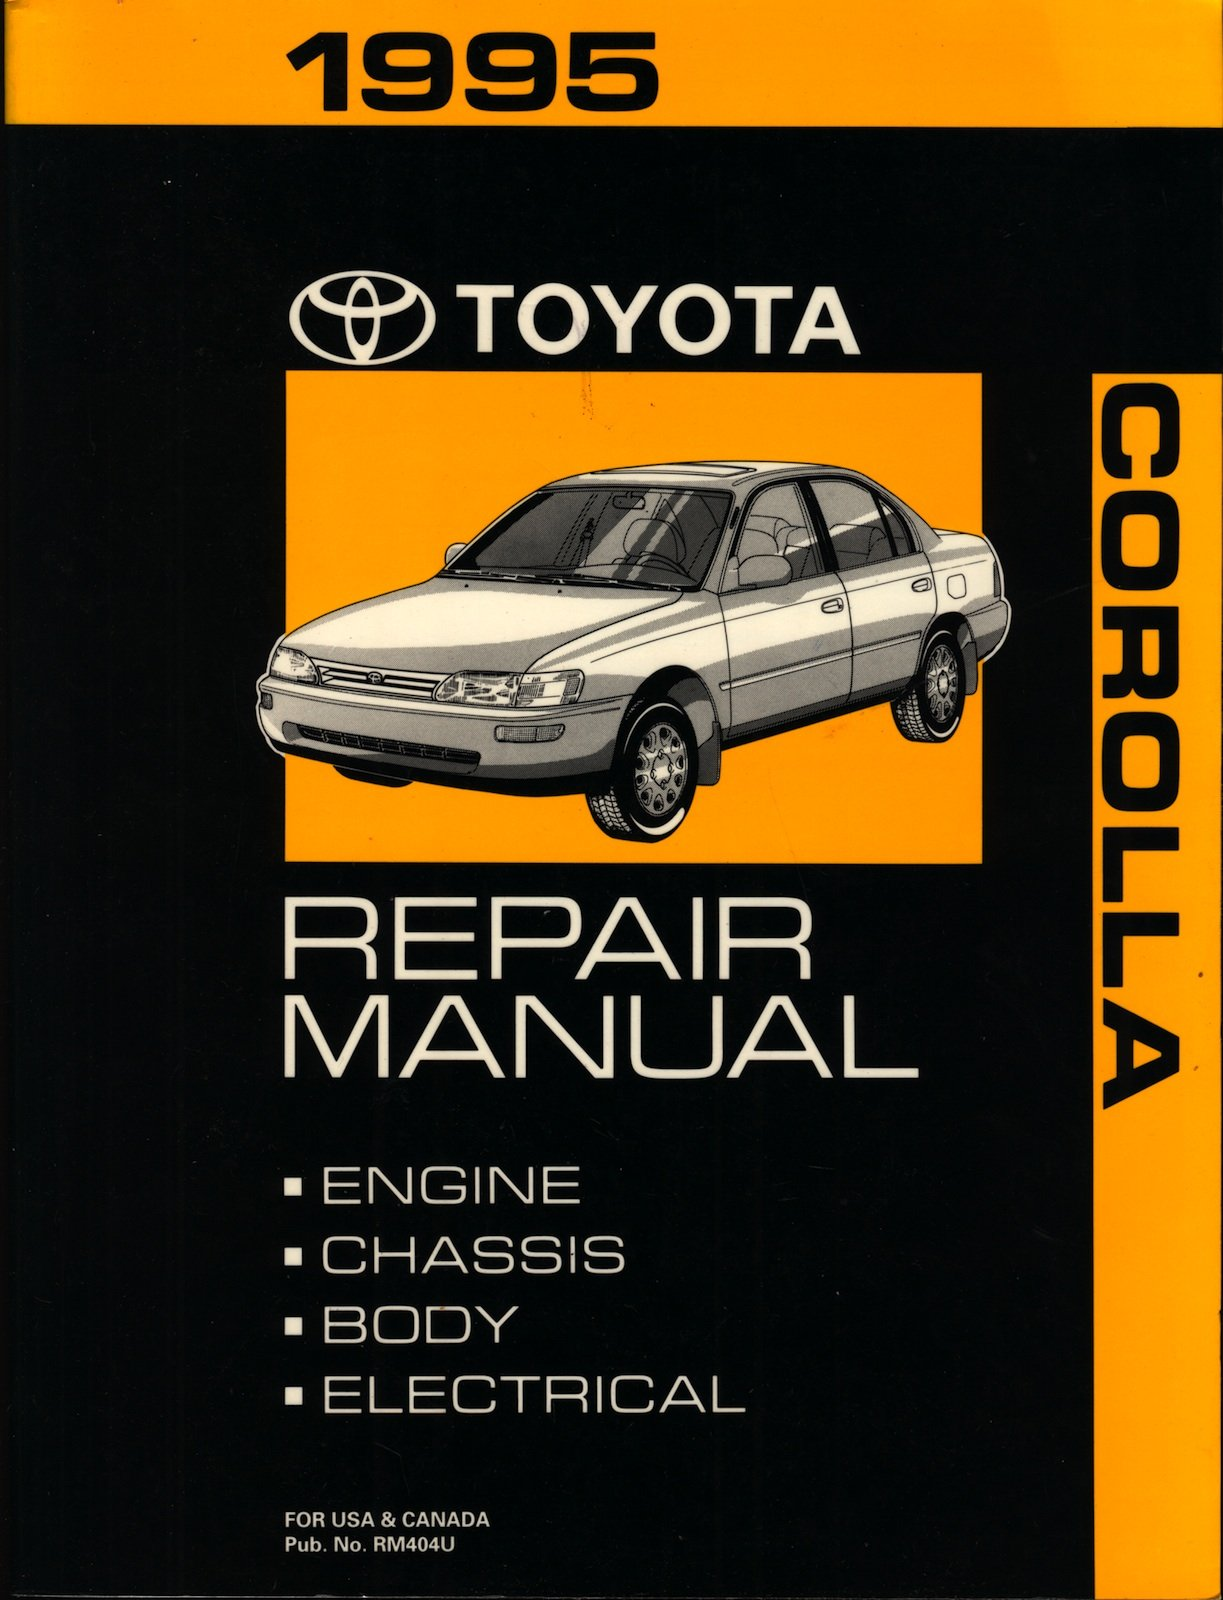 94 Corolla Wiring Diagram Library Car Audio 2006 Land Rover Lr3 1995 Toyota Repair Manual Amazon Com Books 1994